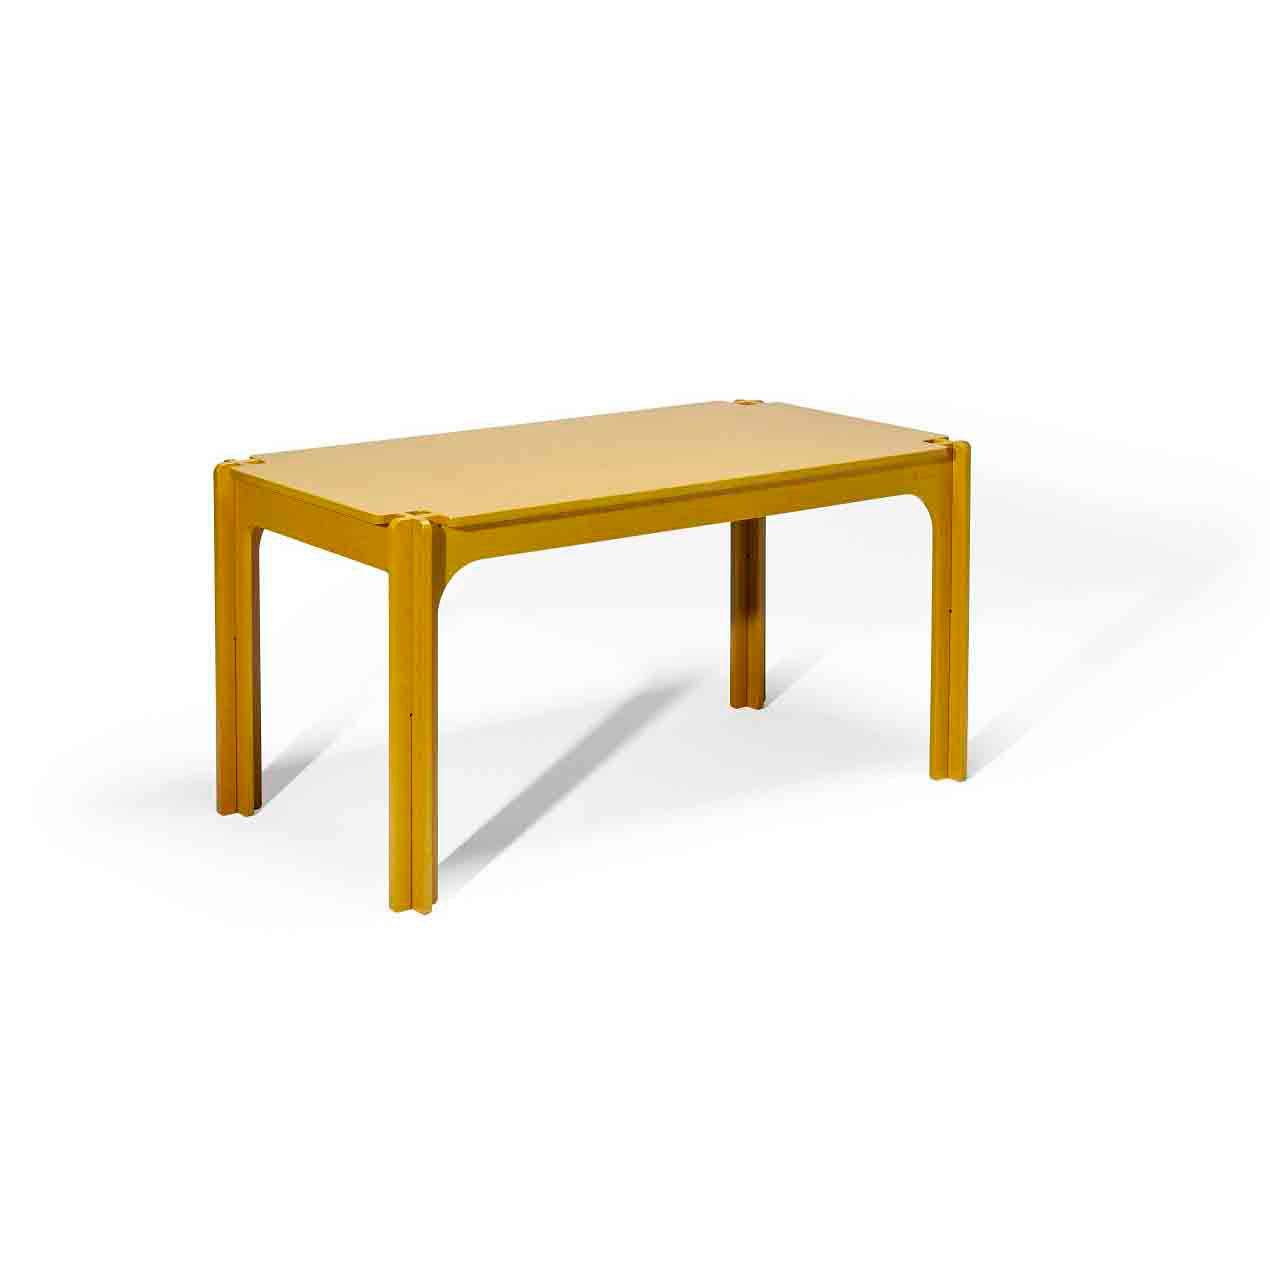 Rubble Interior Design Marketplace, Yellow Valchromat Minuto 150 Big Table +JOIN by Designer Diogo Belo Mendes